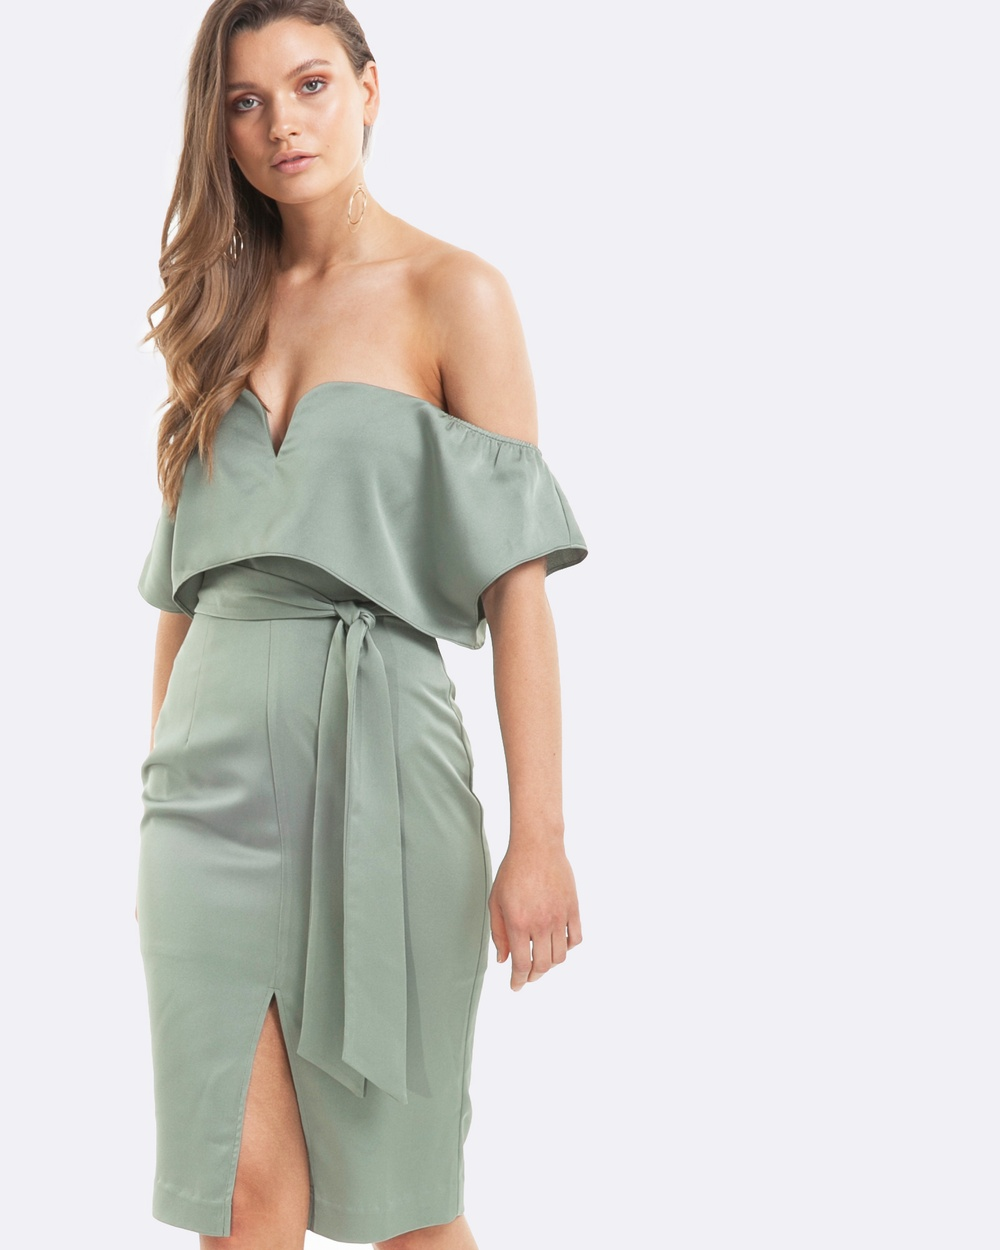 Amelius Glamour Dress Dresses Green Glamour Dress